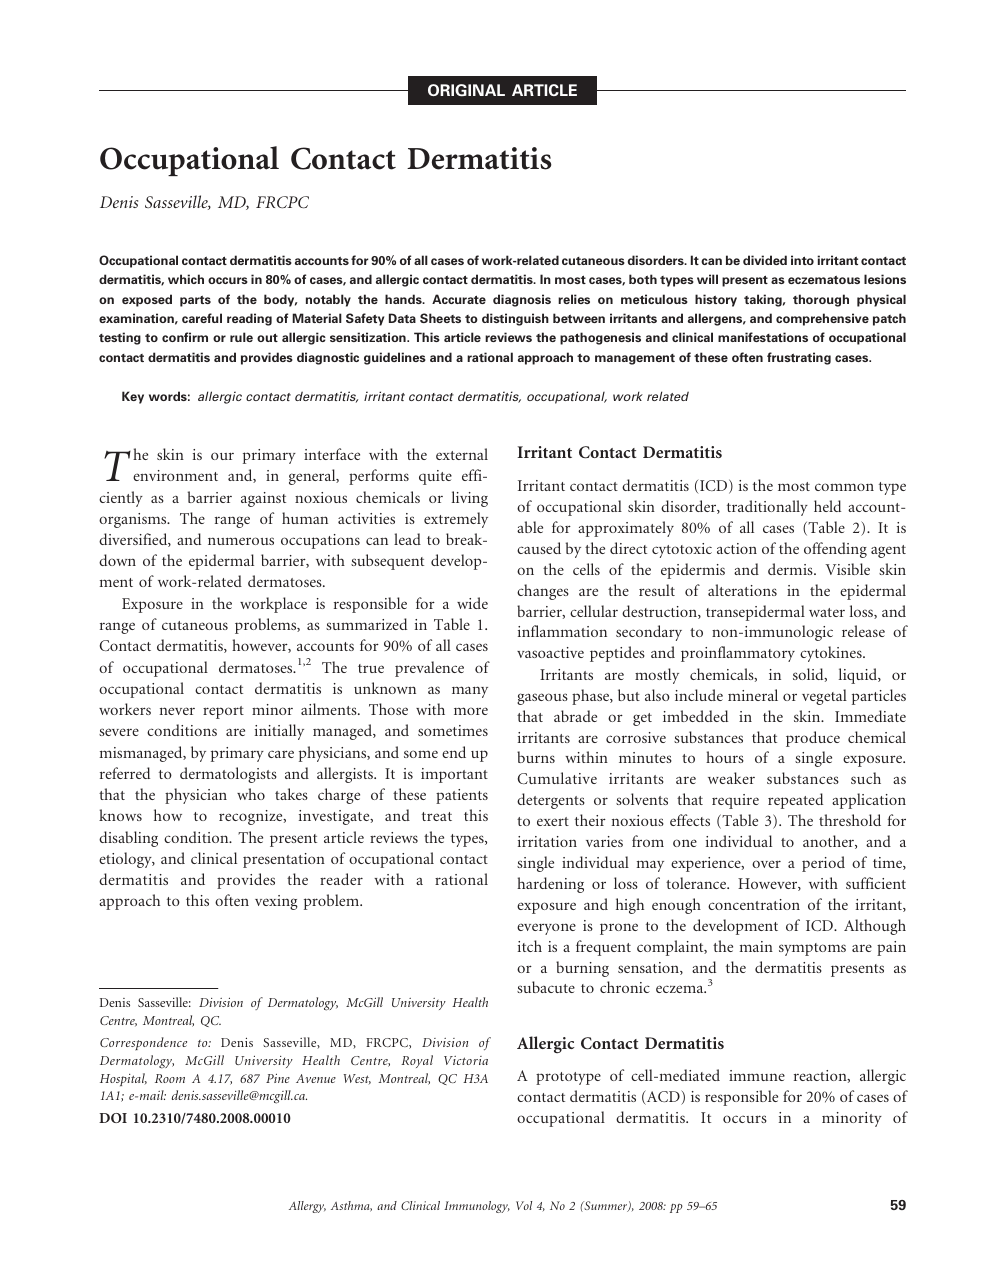 Occupational Contact Dermatitis – topic of research paper in